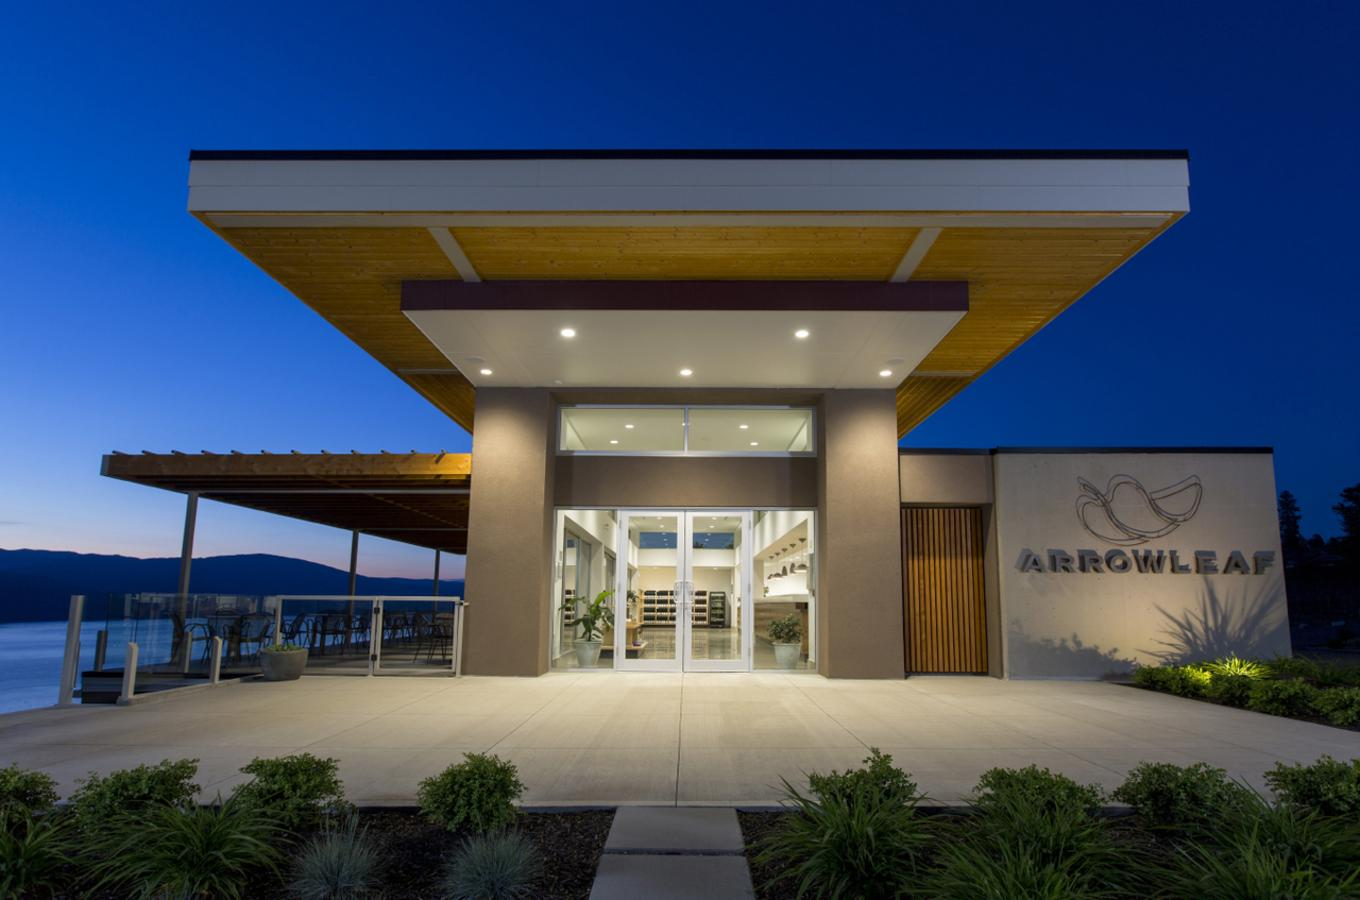 Arrowleaf New Winery